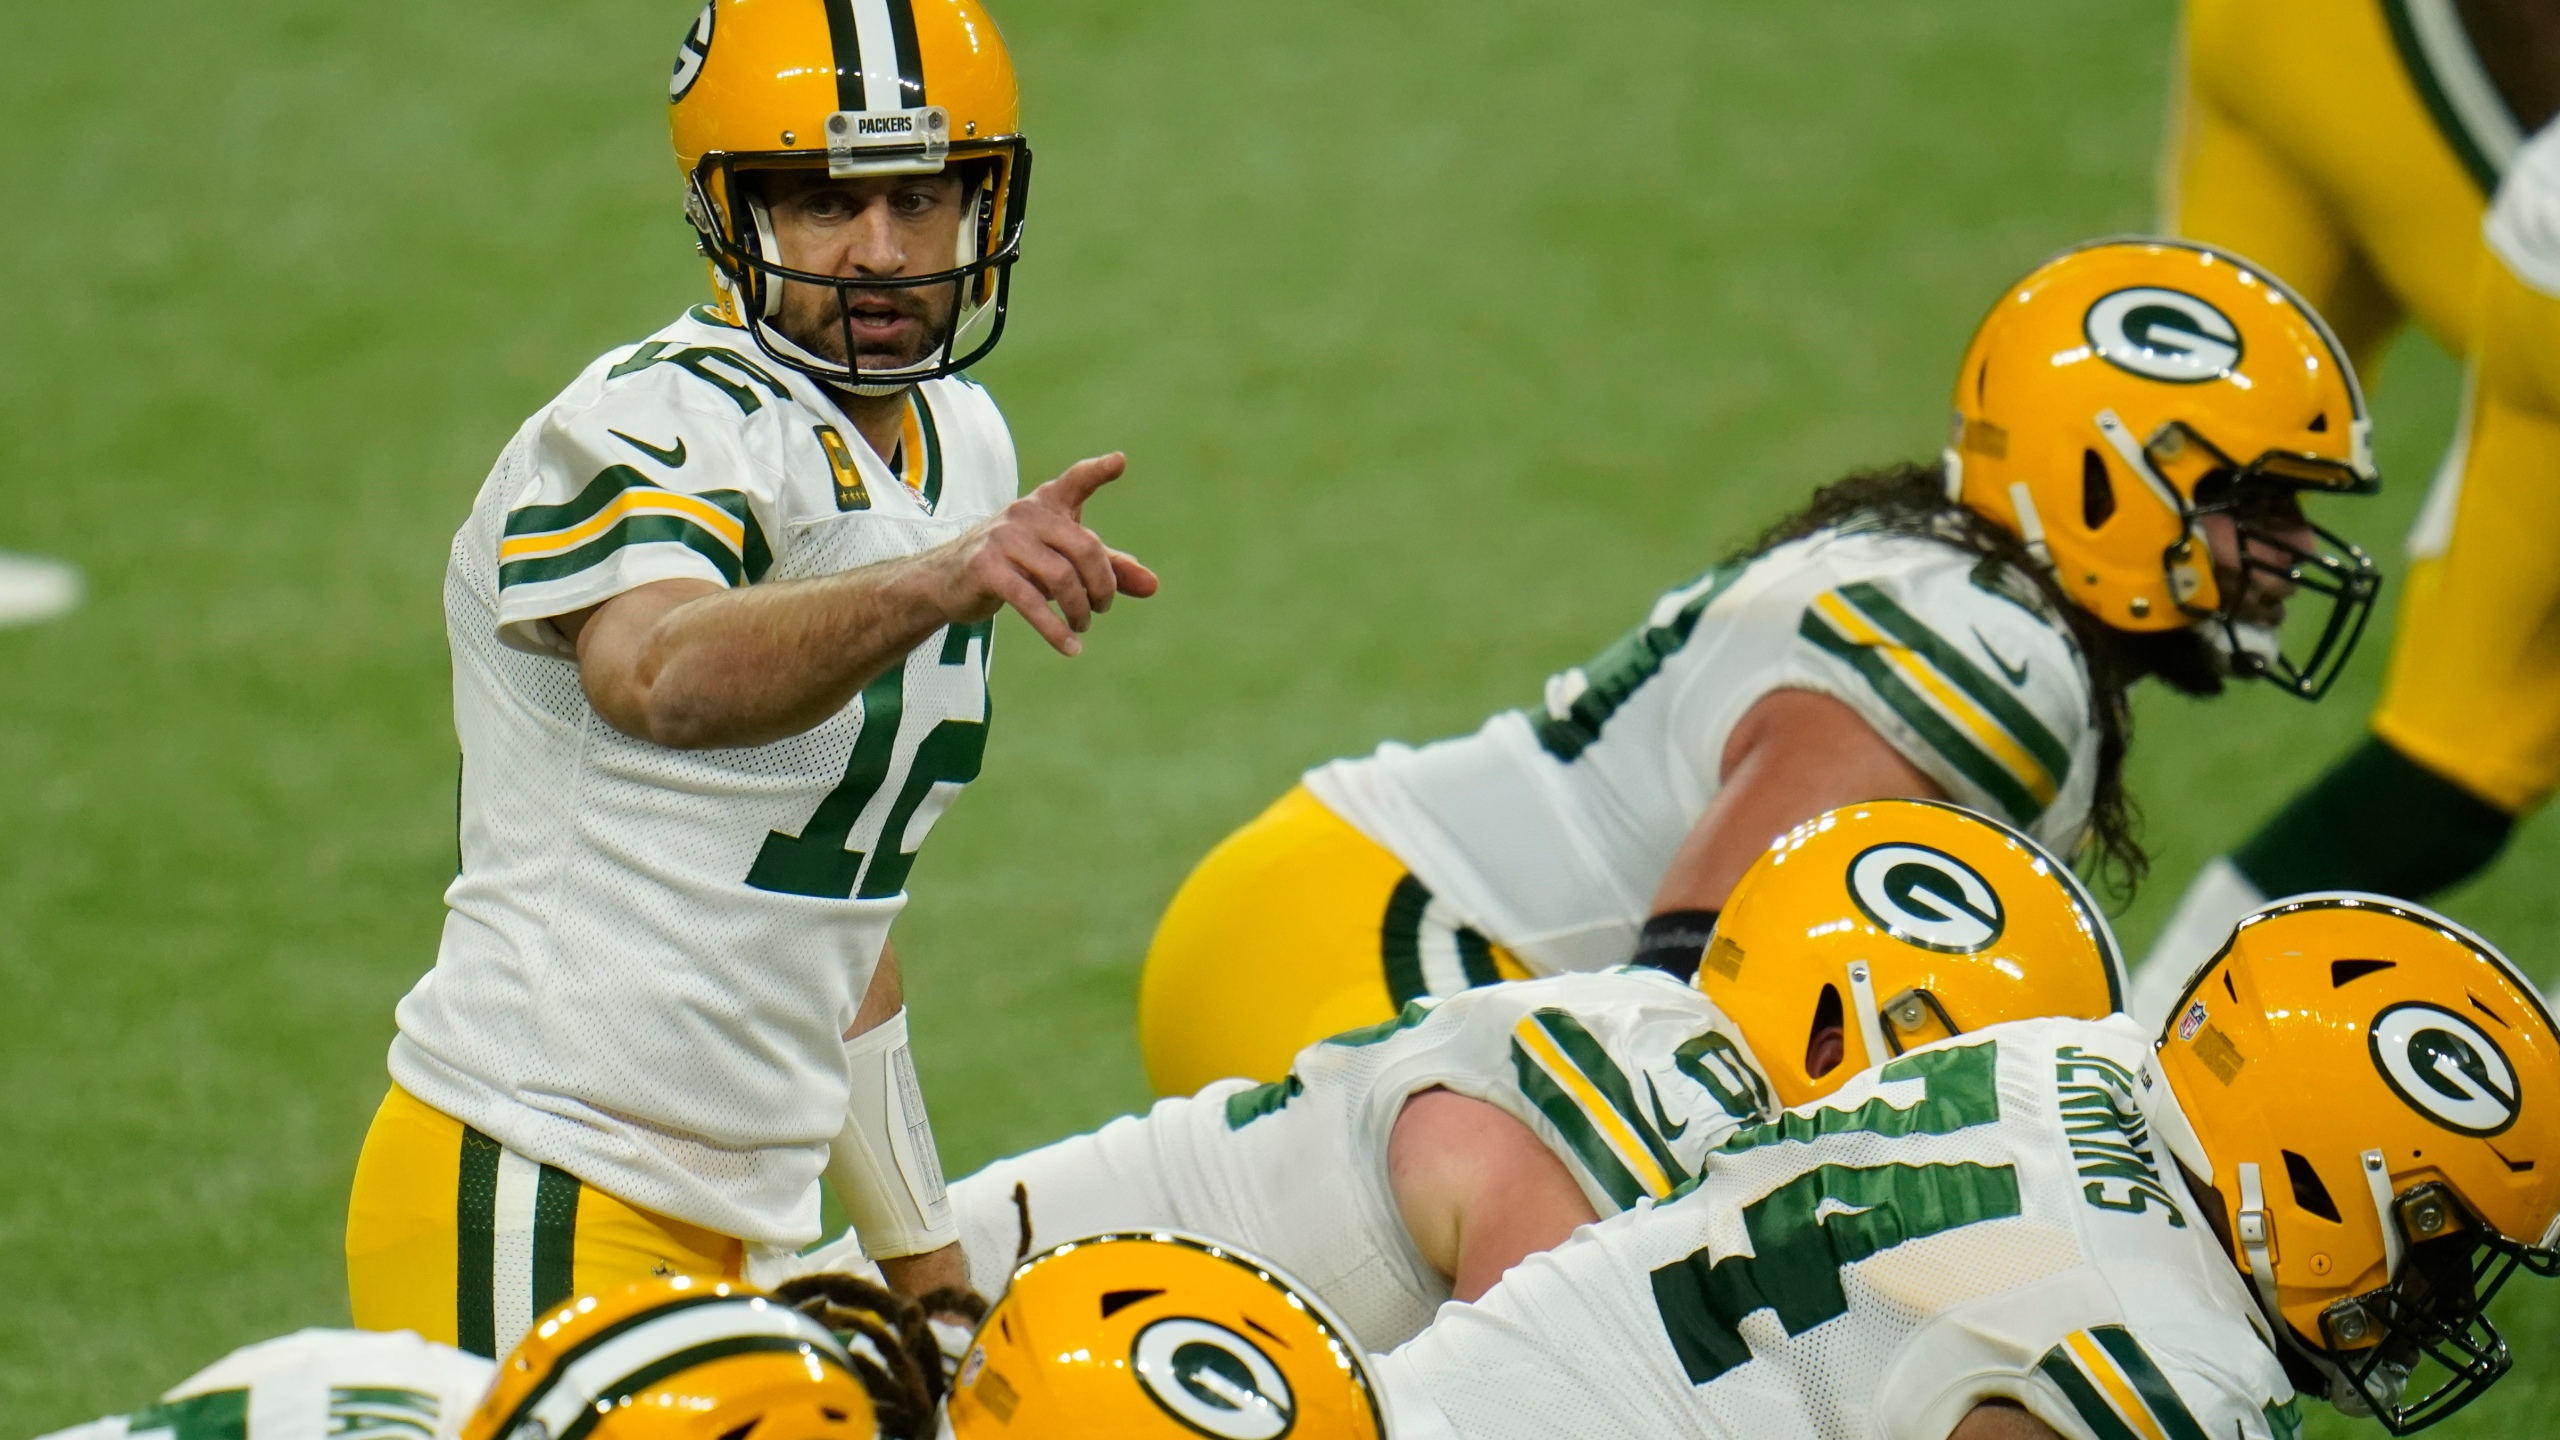 Packers Clinch Nfc North With Win Over Lions 31 24